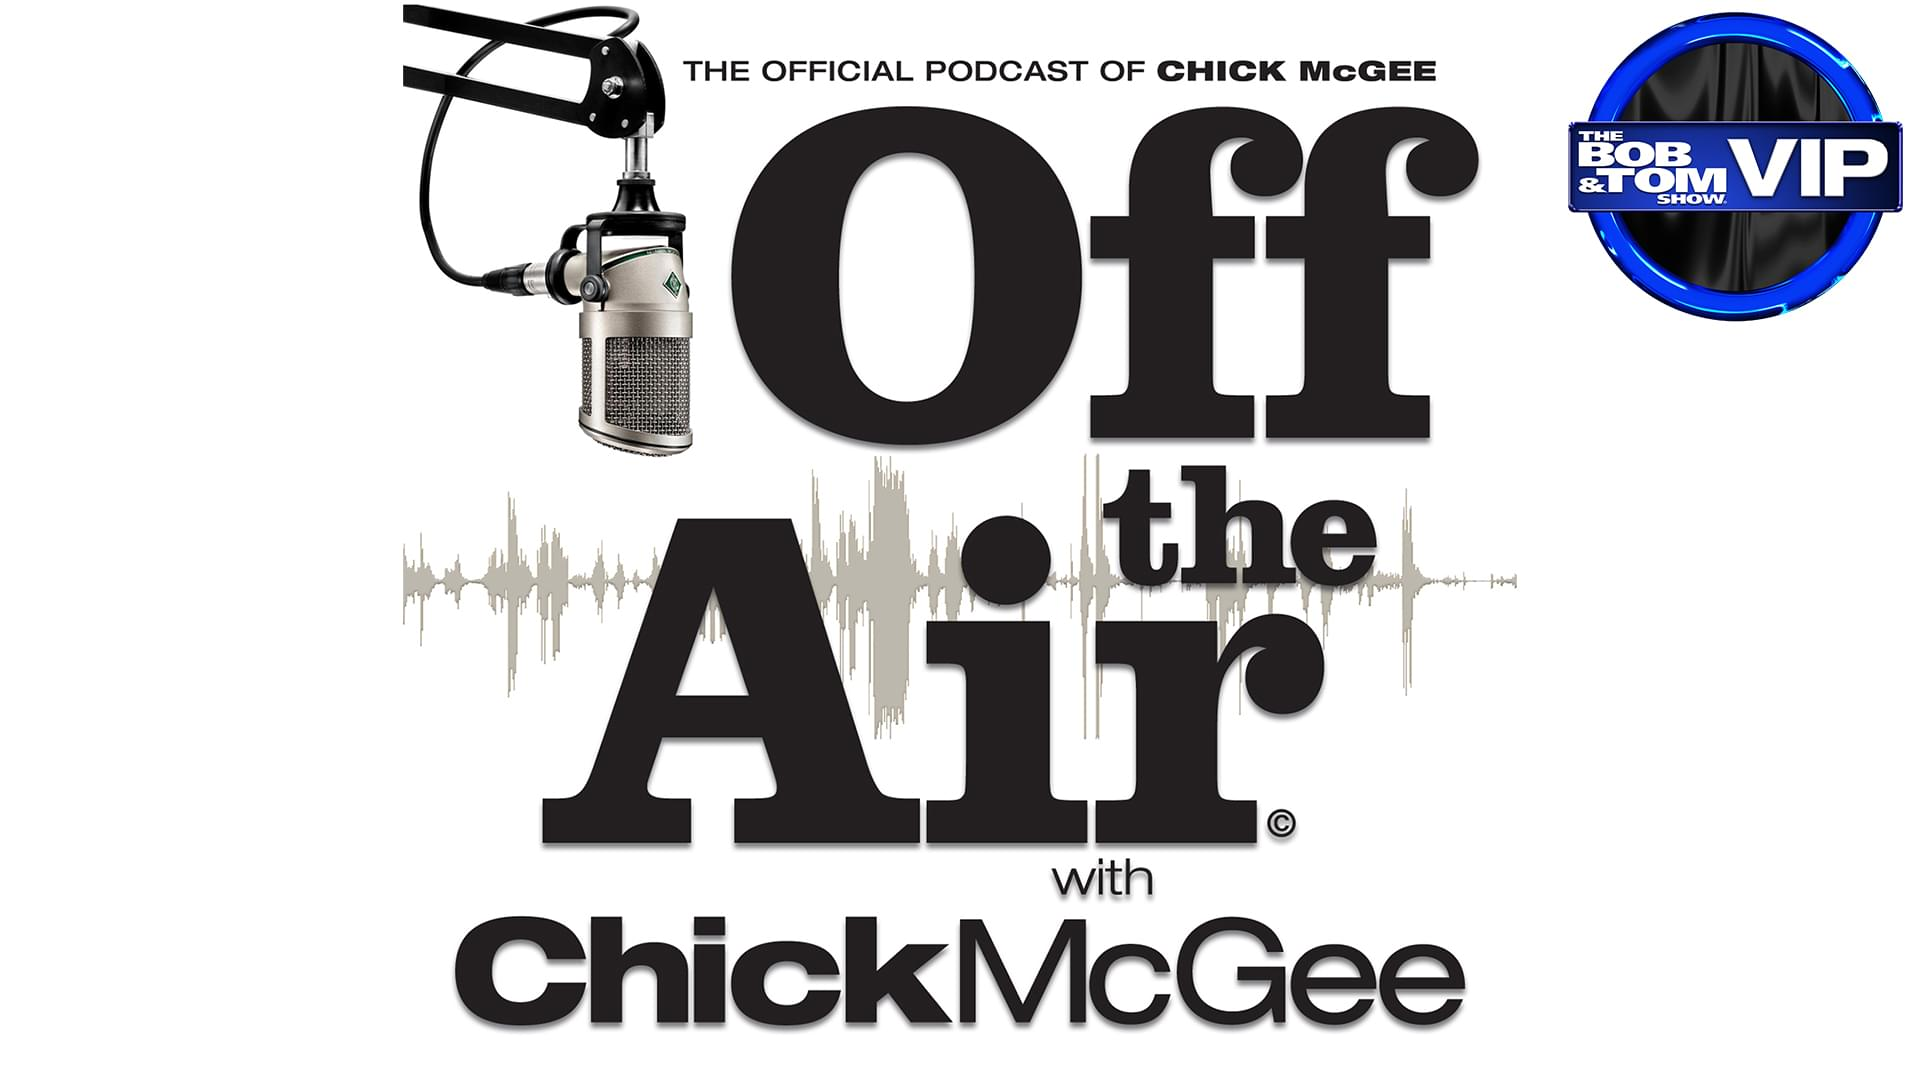 Off the Air with Chick McGee is Back!